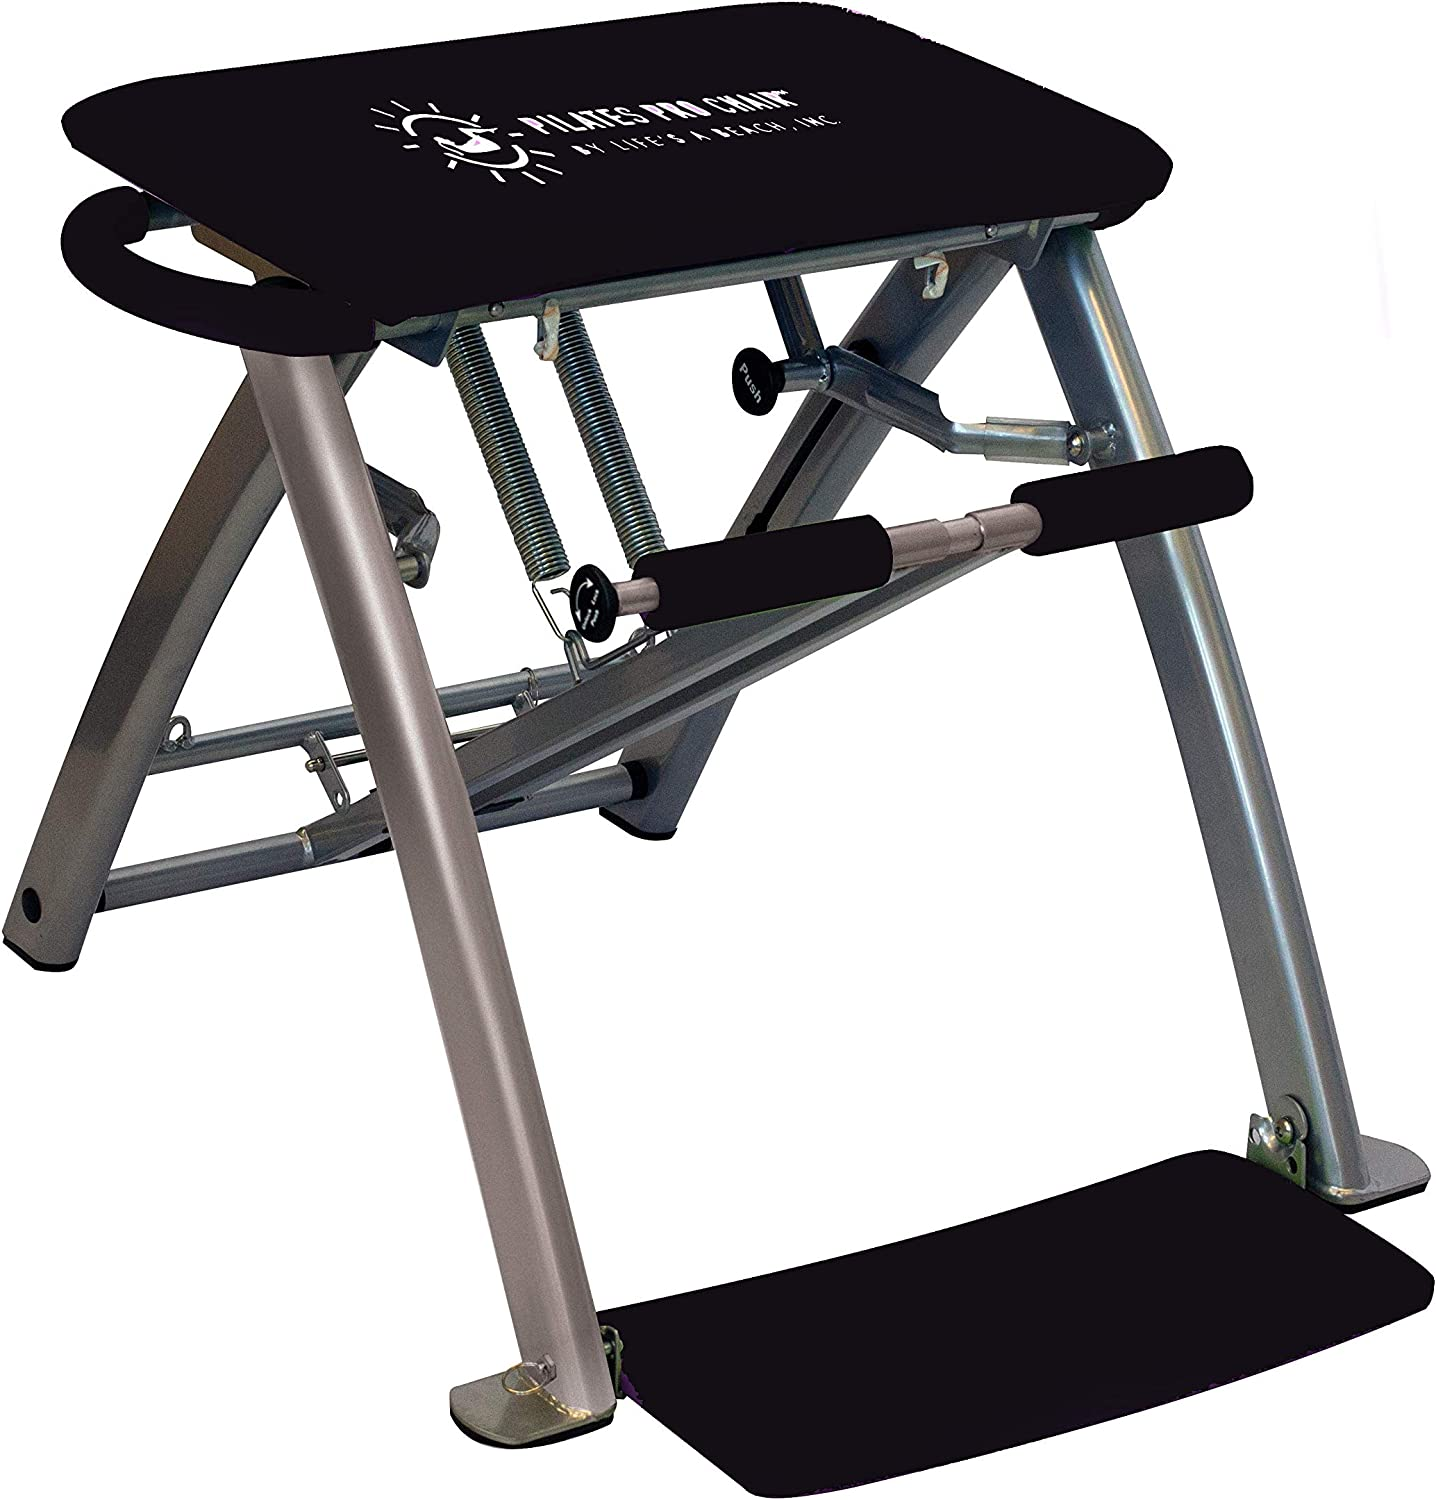 Benefits of the Life's A Beach Pilates PRO Chair with 4 DVDs